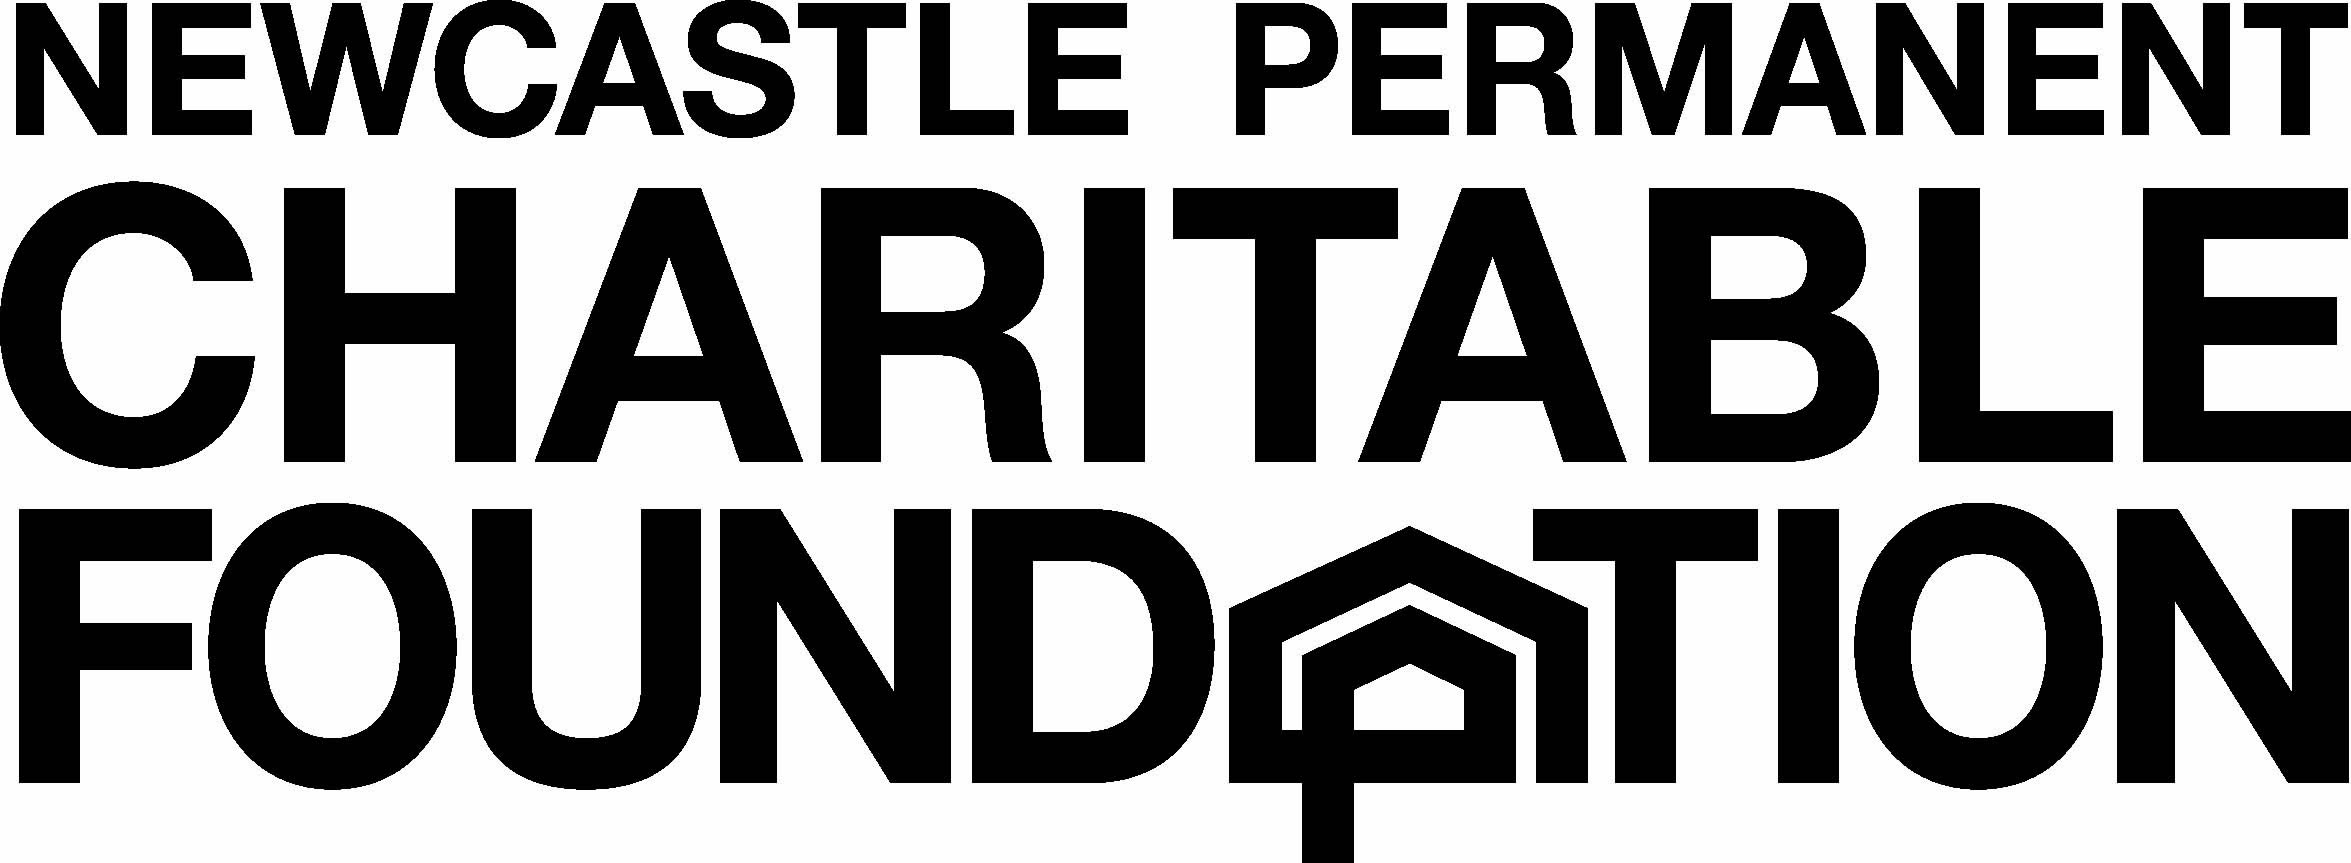 newcastle-permanent-charitable-foundation-logo